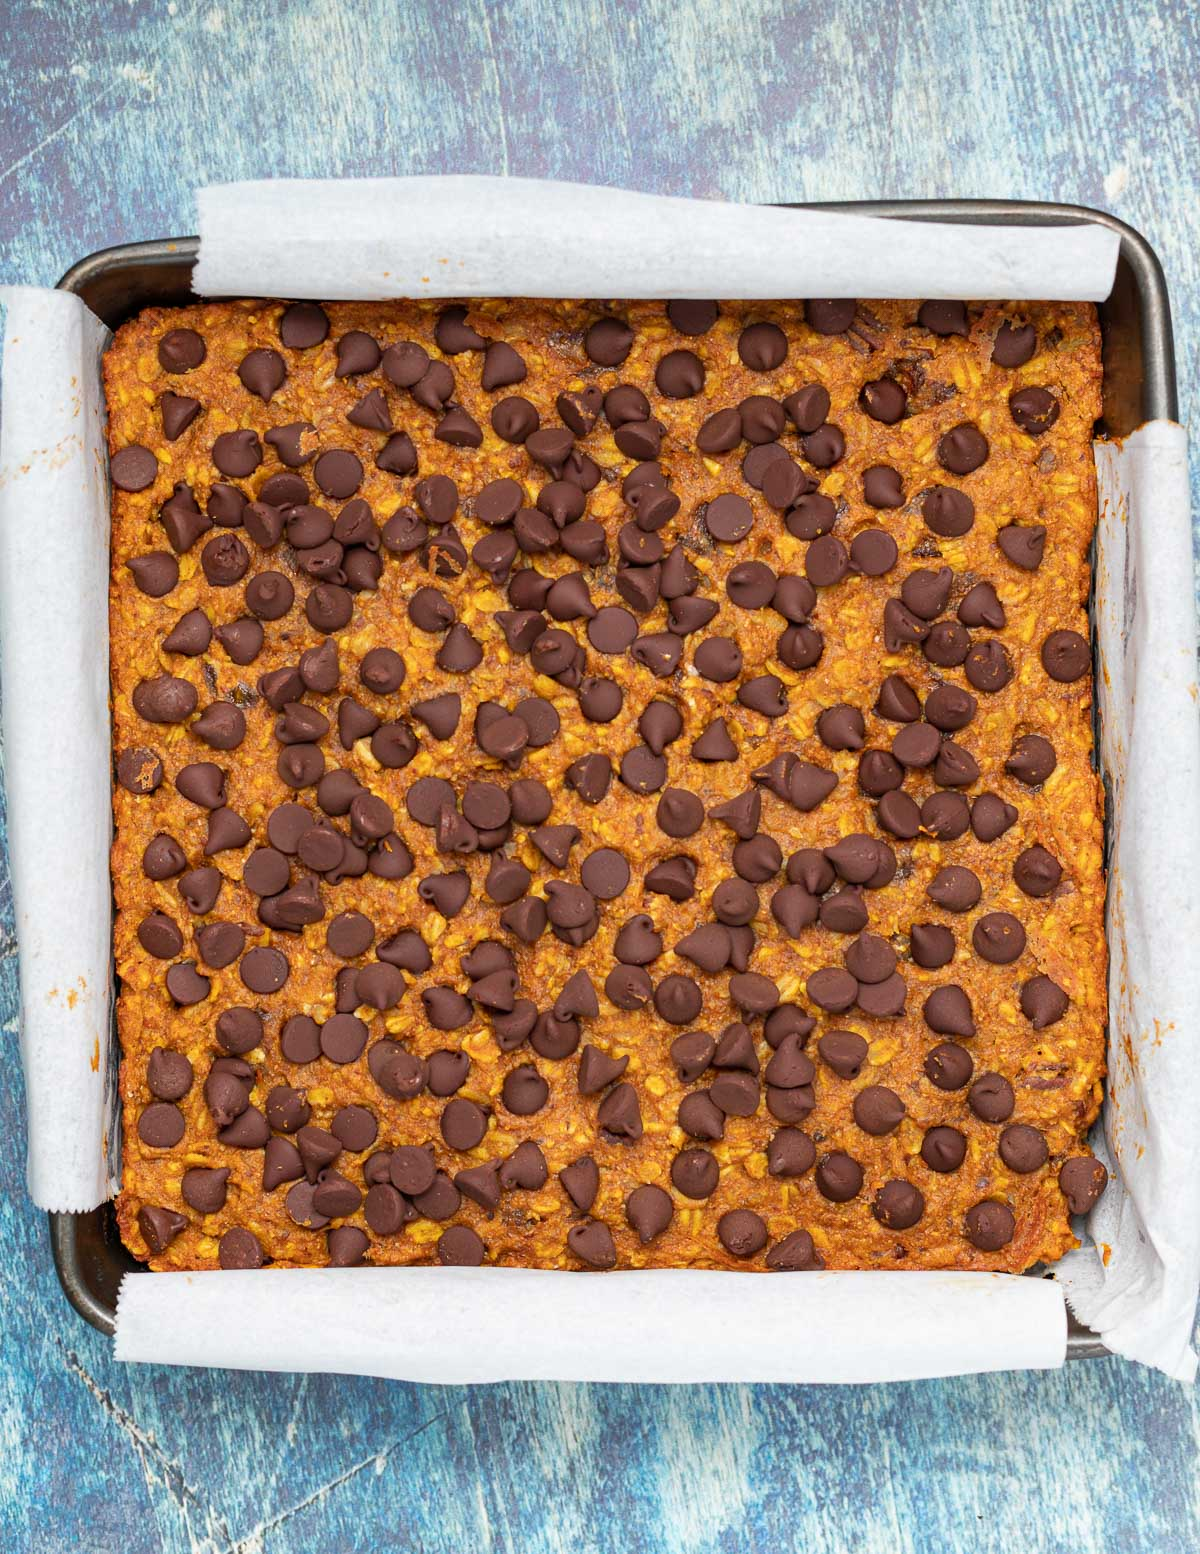 a pan of uncut oatmeal bars with chocolate chips on top